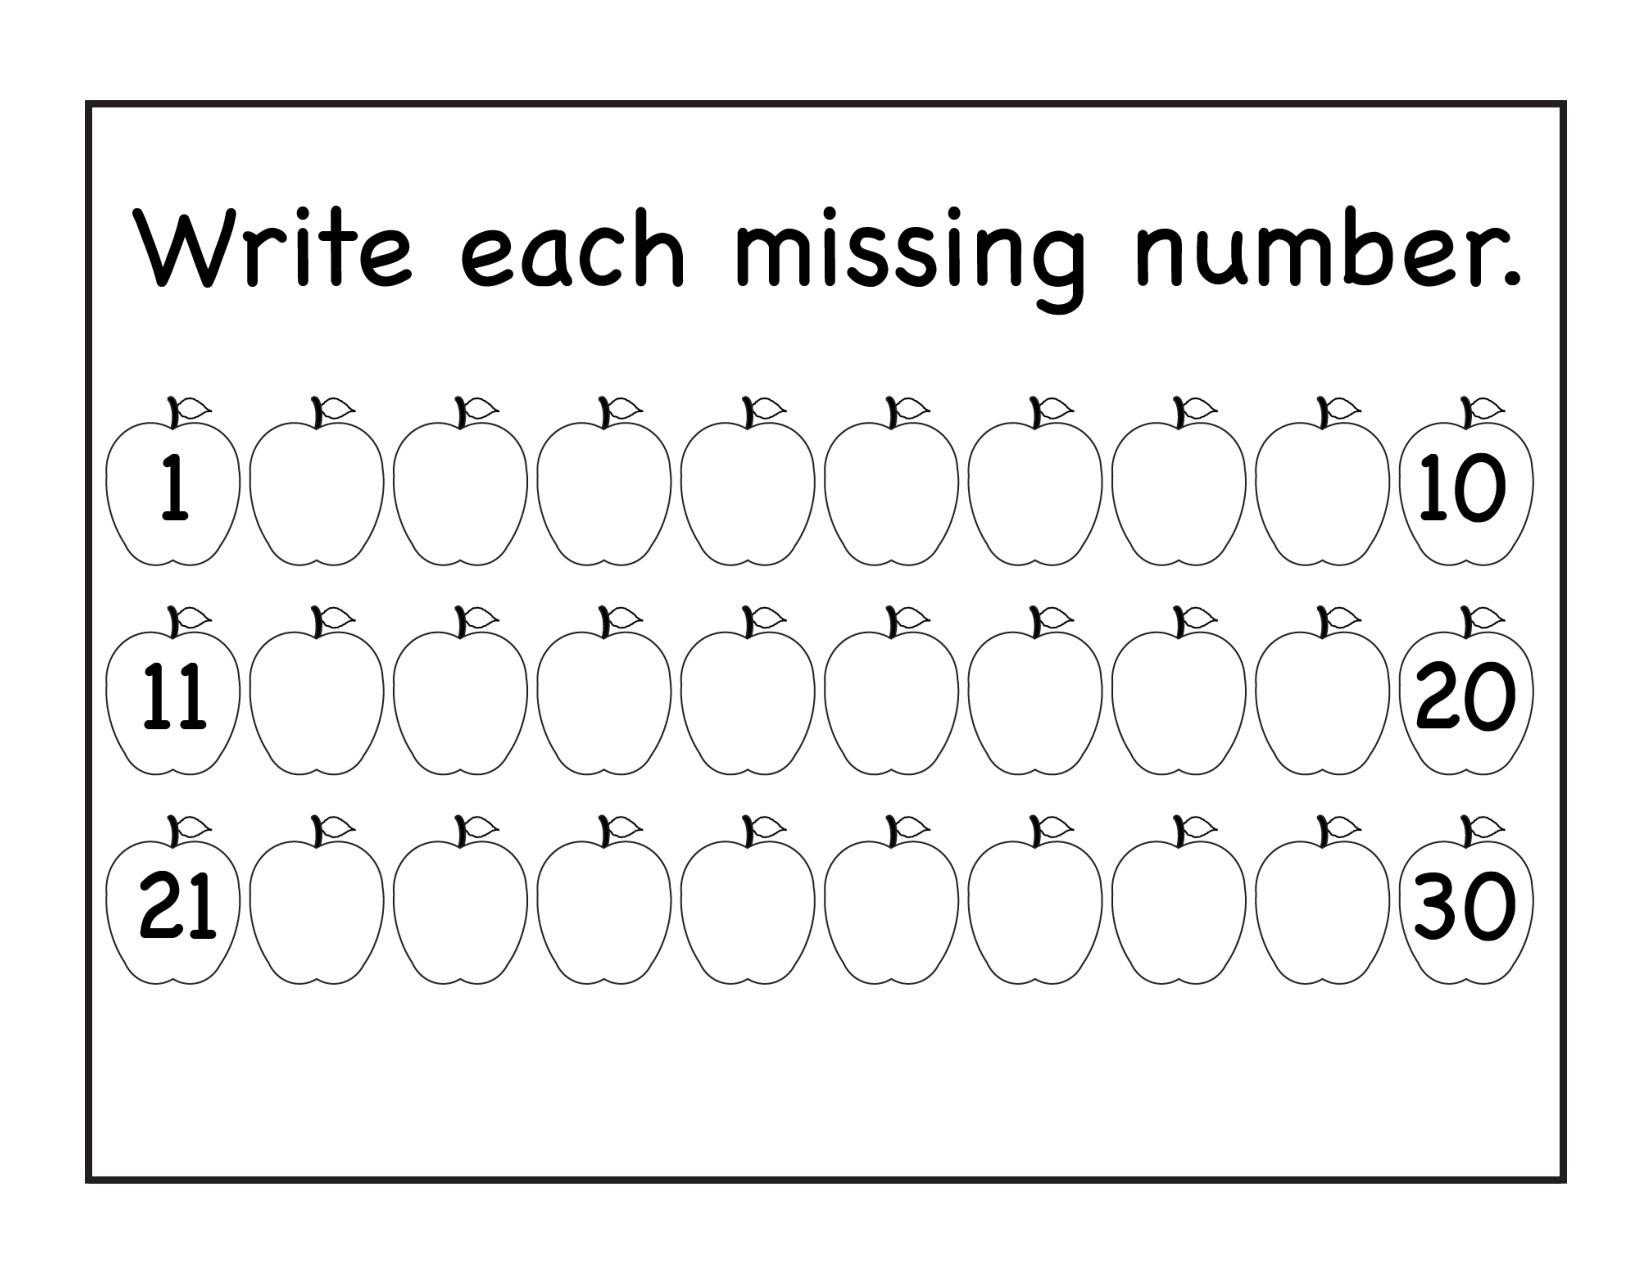 missingnumbers fruits 1to30 1 page 001